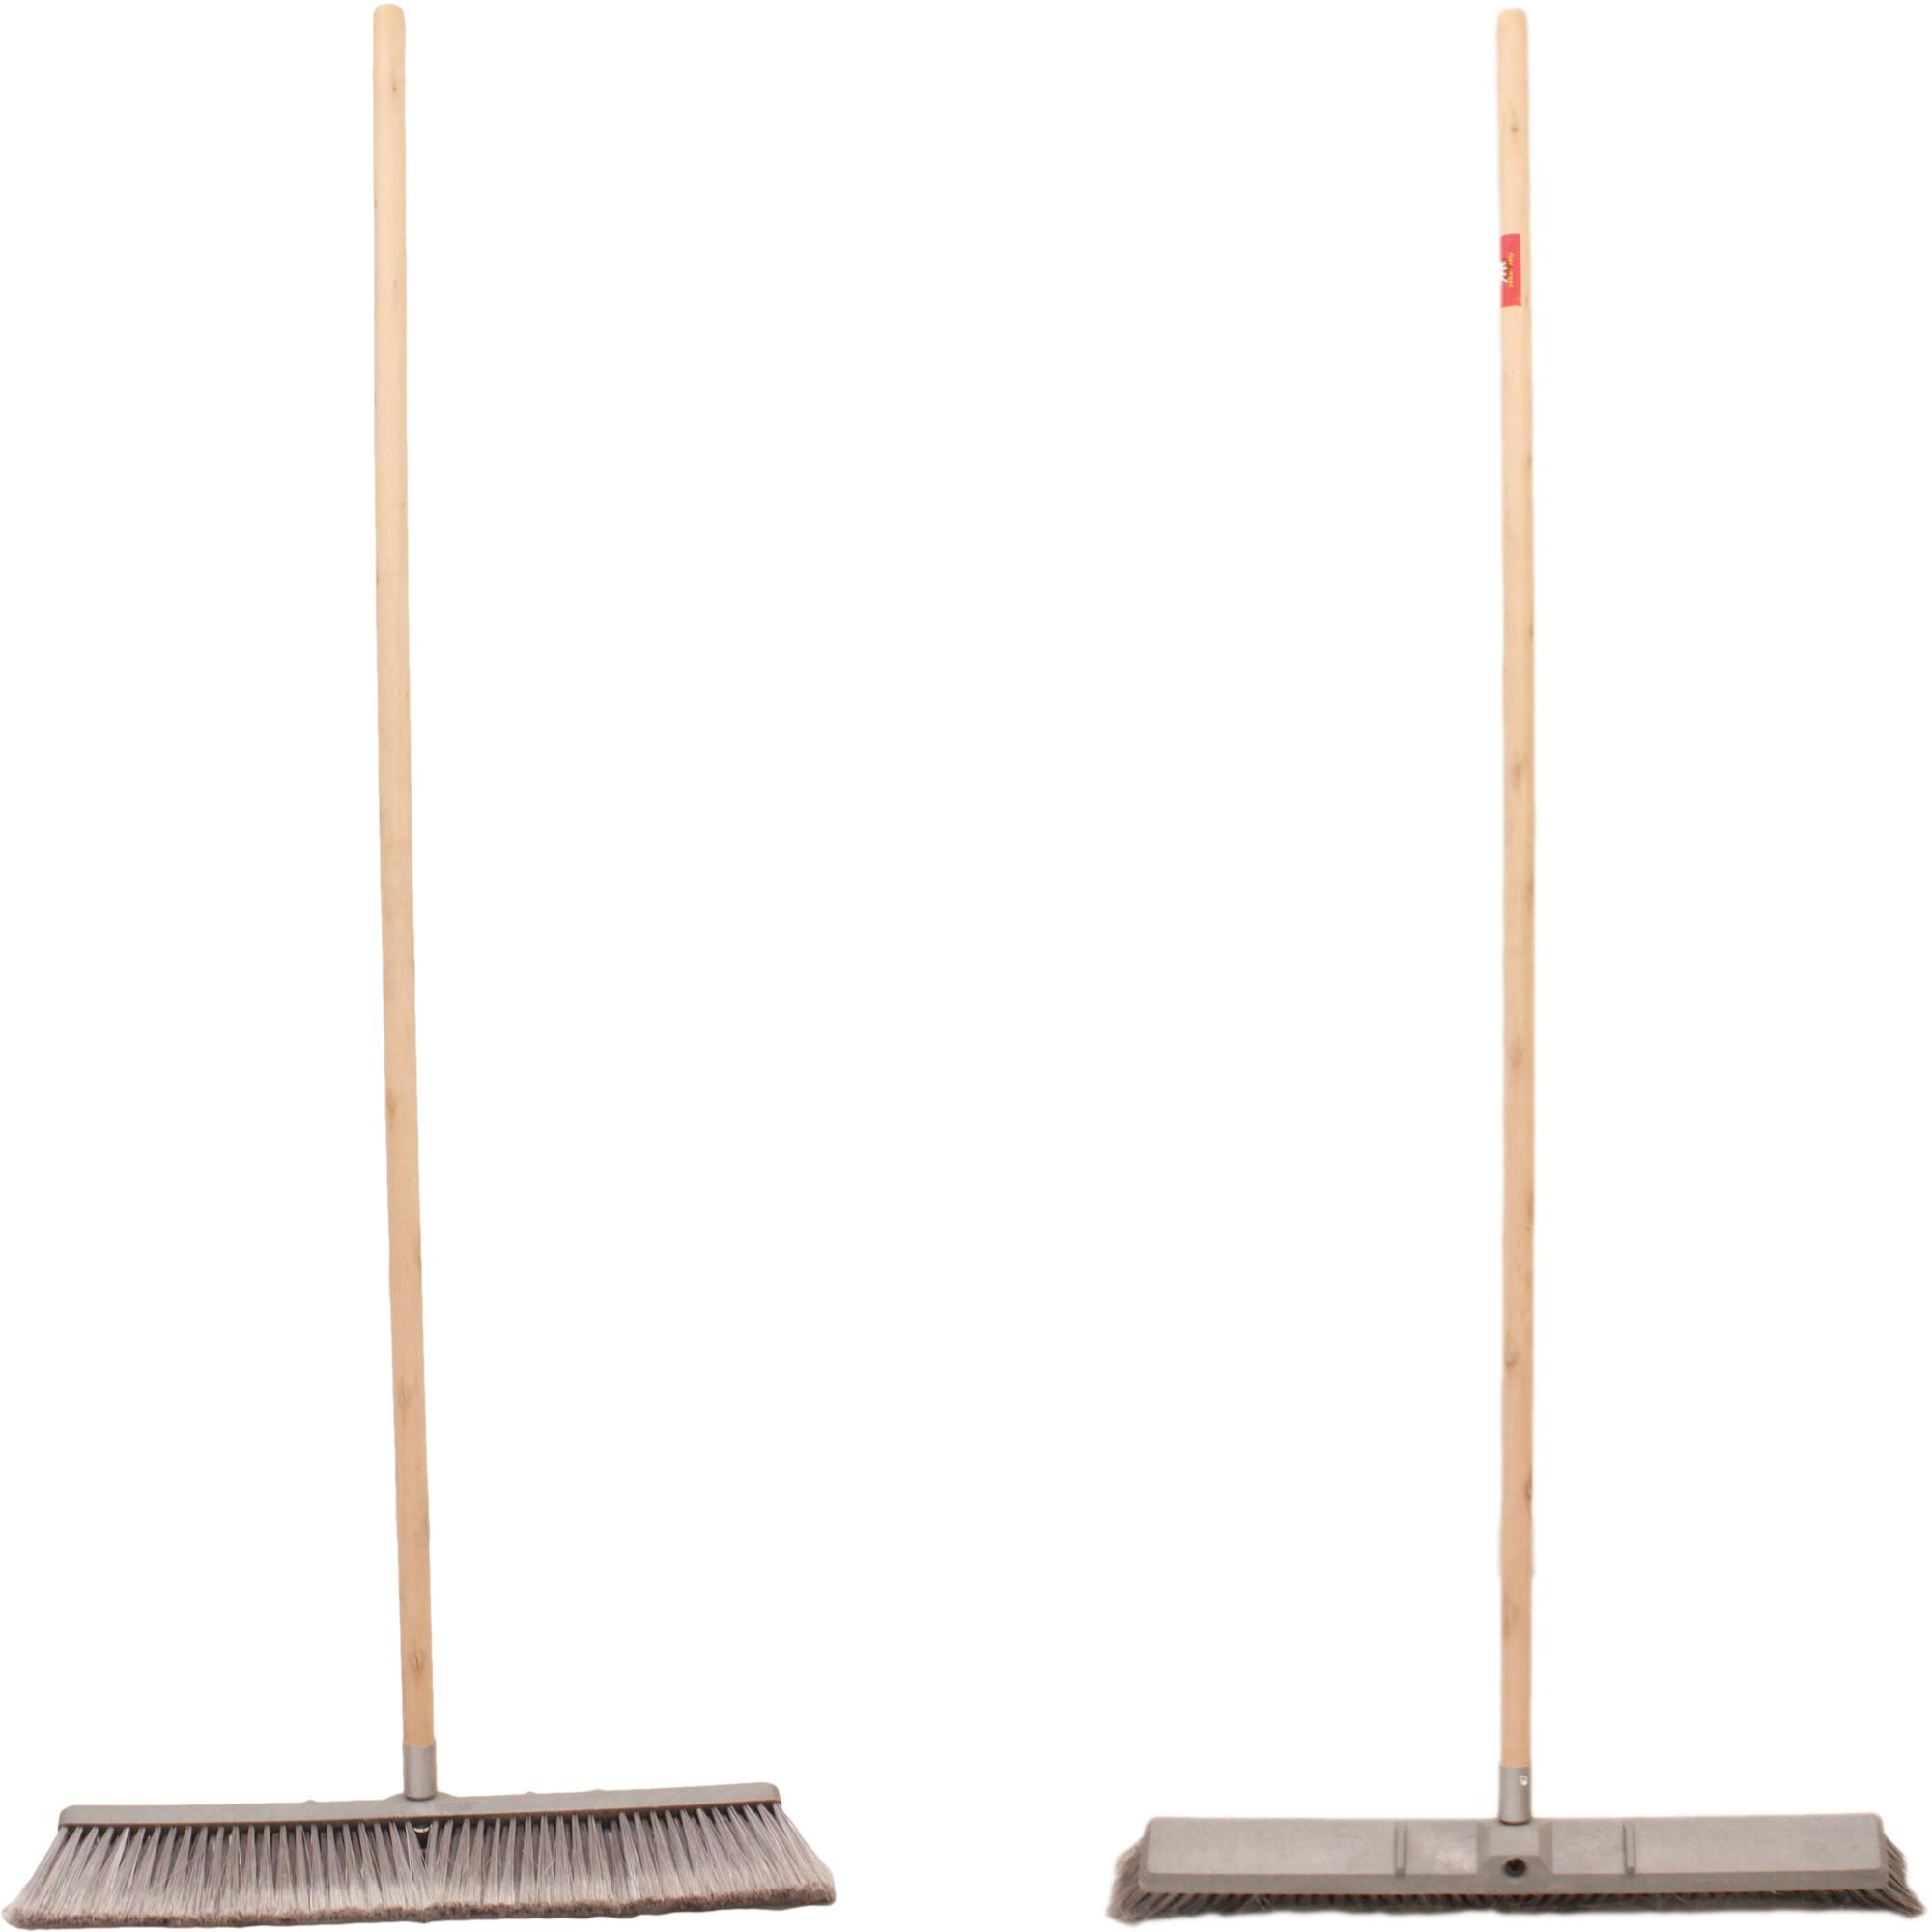 Professional Commercial Multi Surface Heavy Duty Industrial Push Broom Rough Surface Sweeper Brush With Stiff Bristles & Steel Wire Insert Warehouse & Contractors, Lawn & Garden, Indoor&Outdoor (Gray) by Unique Imports (Image #5)